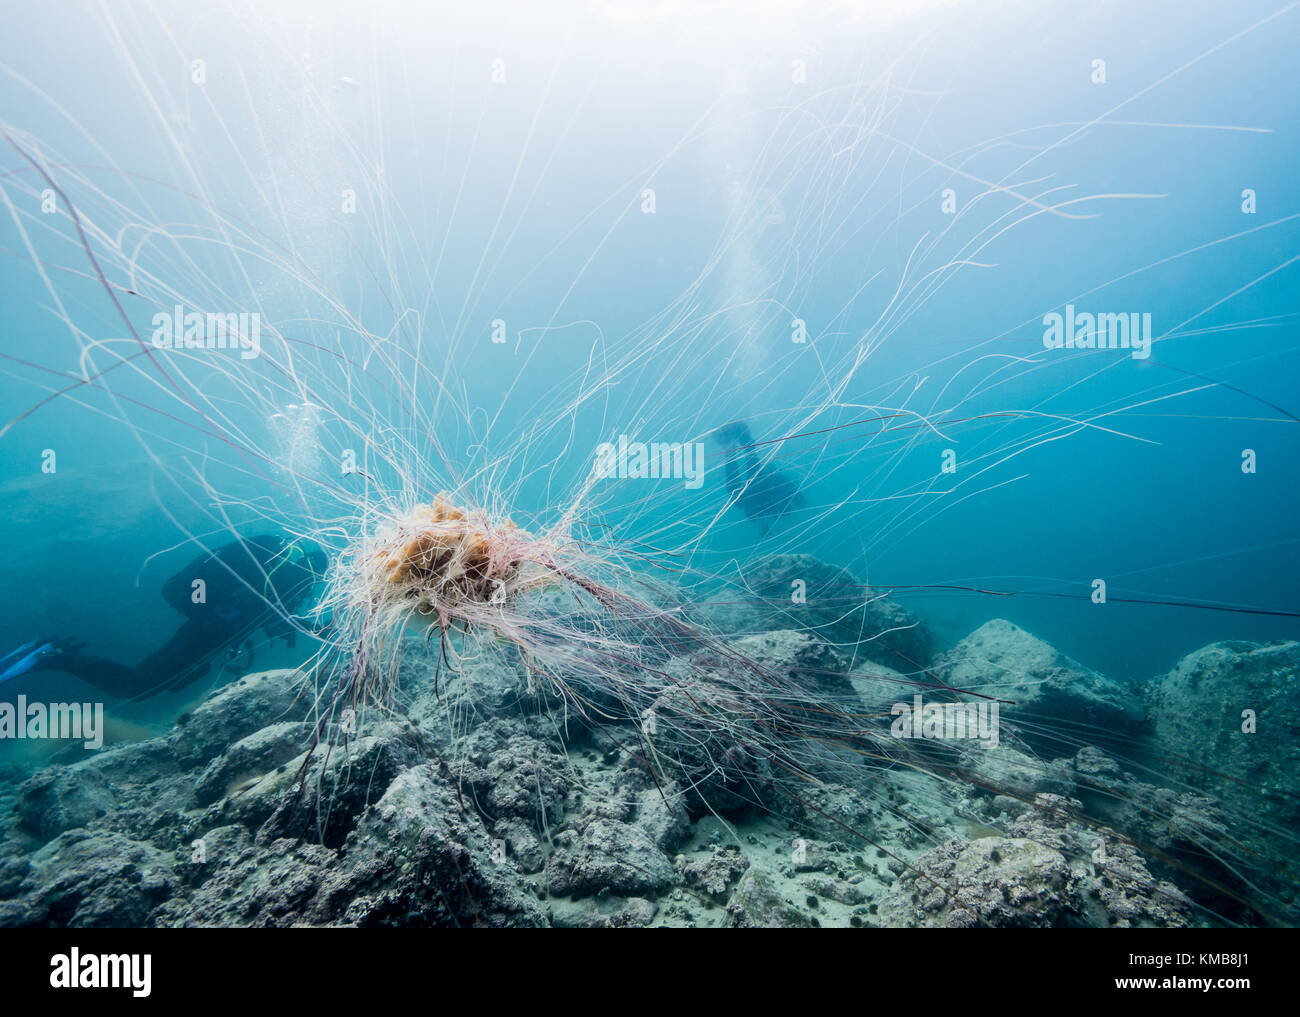 Lion's mane Jellyfish in front of silhouette of divers in Tromso, Norway - Stock Image